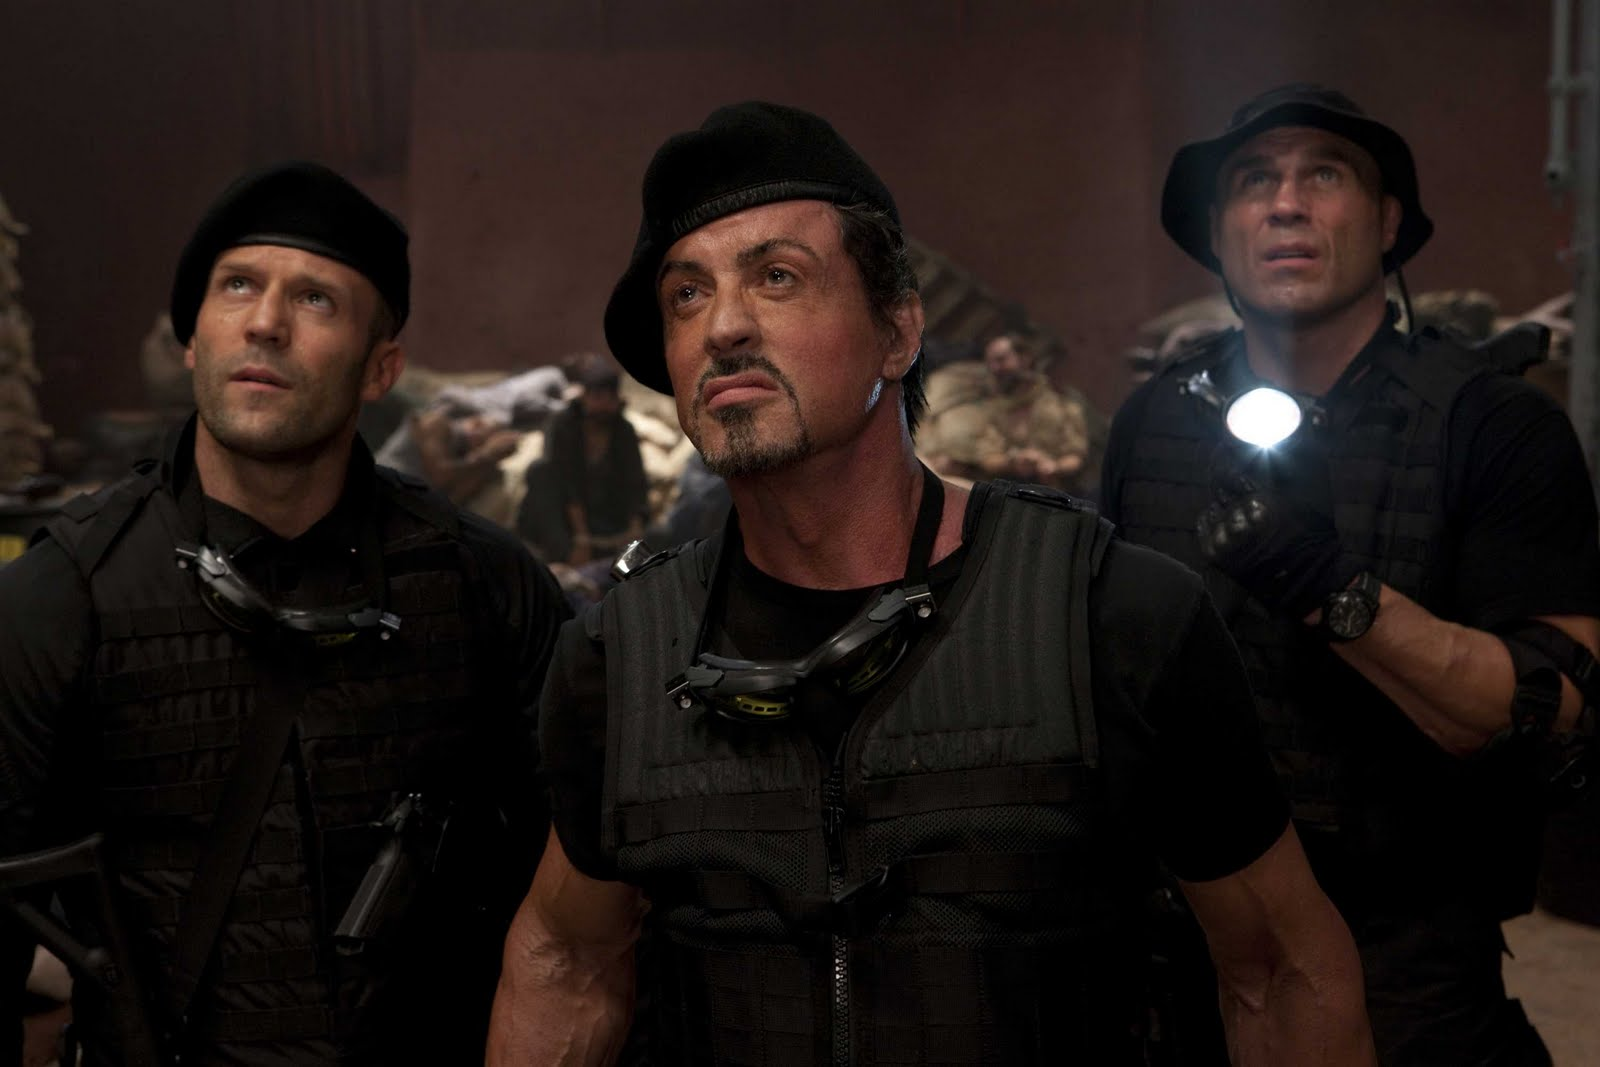 Sylvester Stallone In Expendables 2 Wallpapers: 'The Expendables 2' Casting Rumors Begin To Swirl